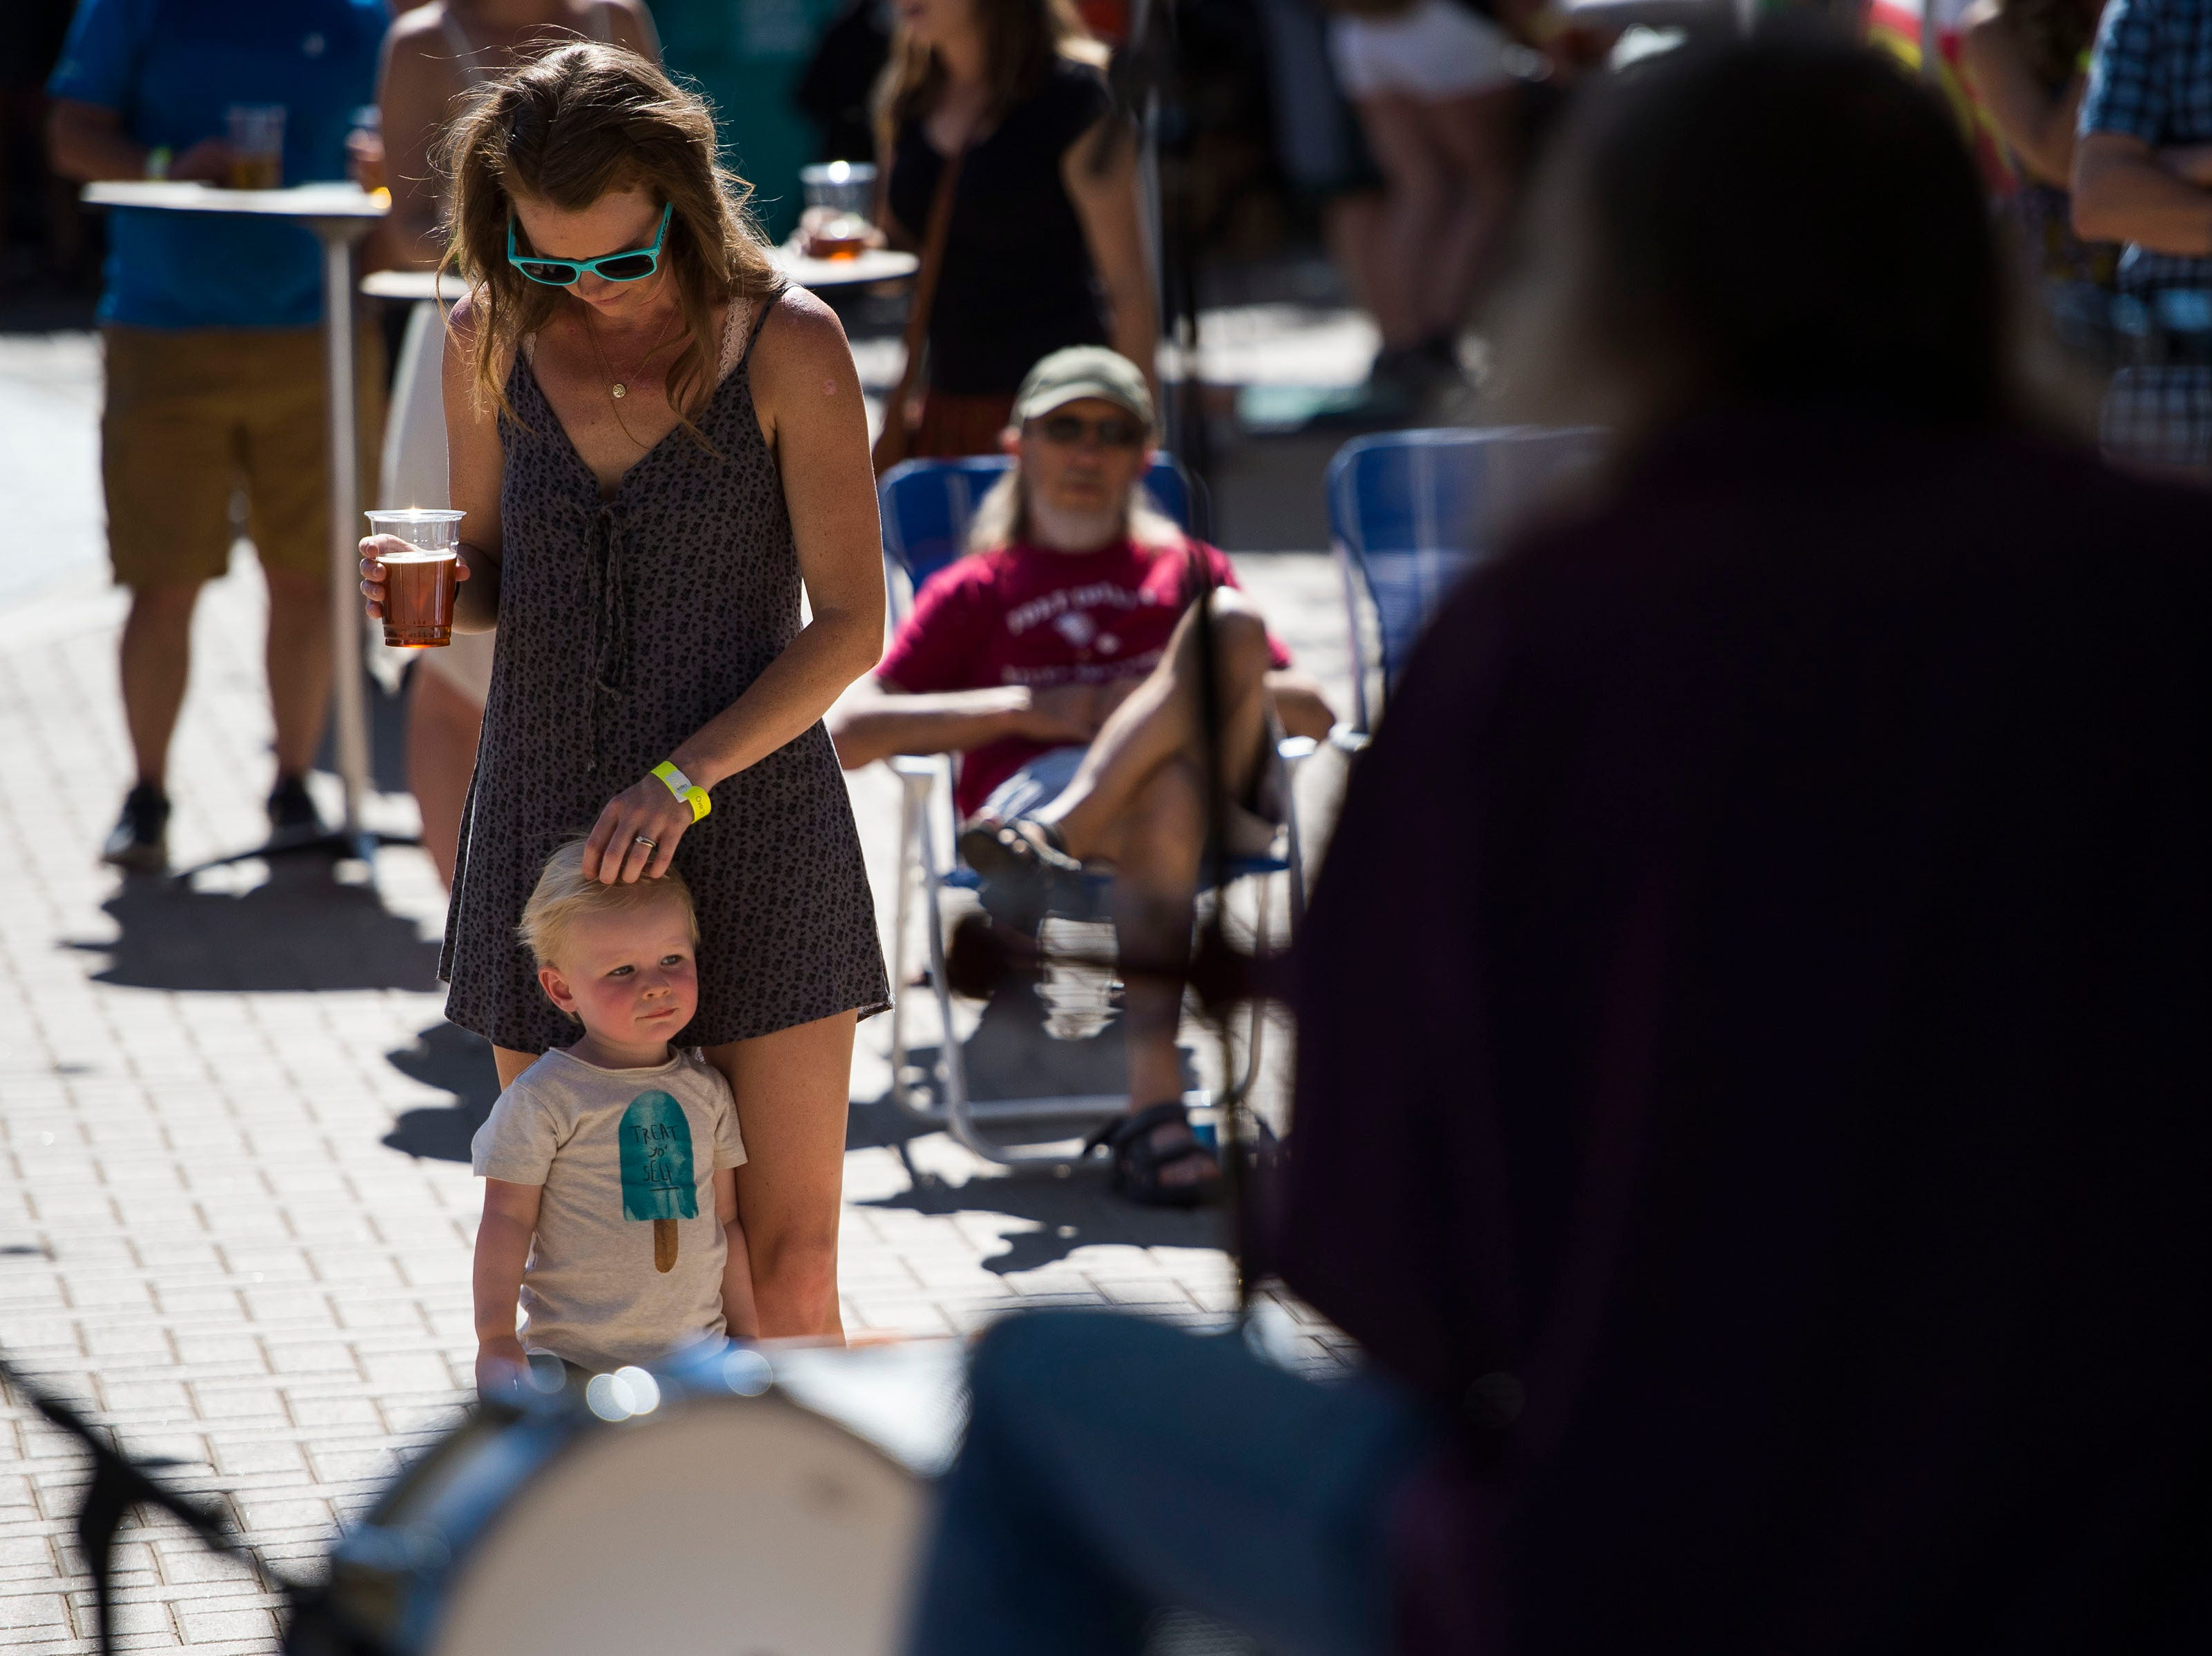 Landis Trainor keeps an eye on Riggins, 1, while he keeps an eye on The Symbols, performing on the Choice Organics stage during Fortoberfest 2018 on Saturday, Sept. 15, 2018, at Old Town Square in Fort Collins, Colo.